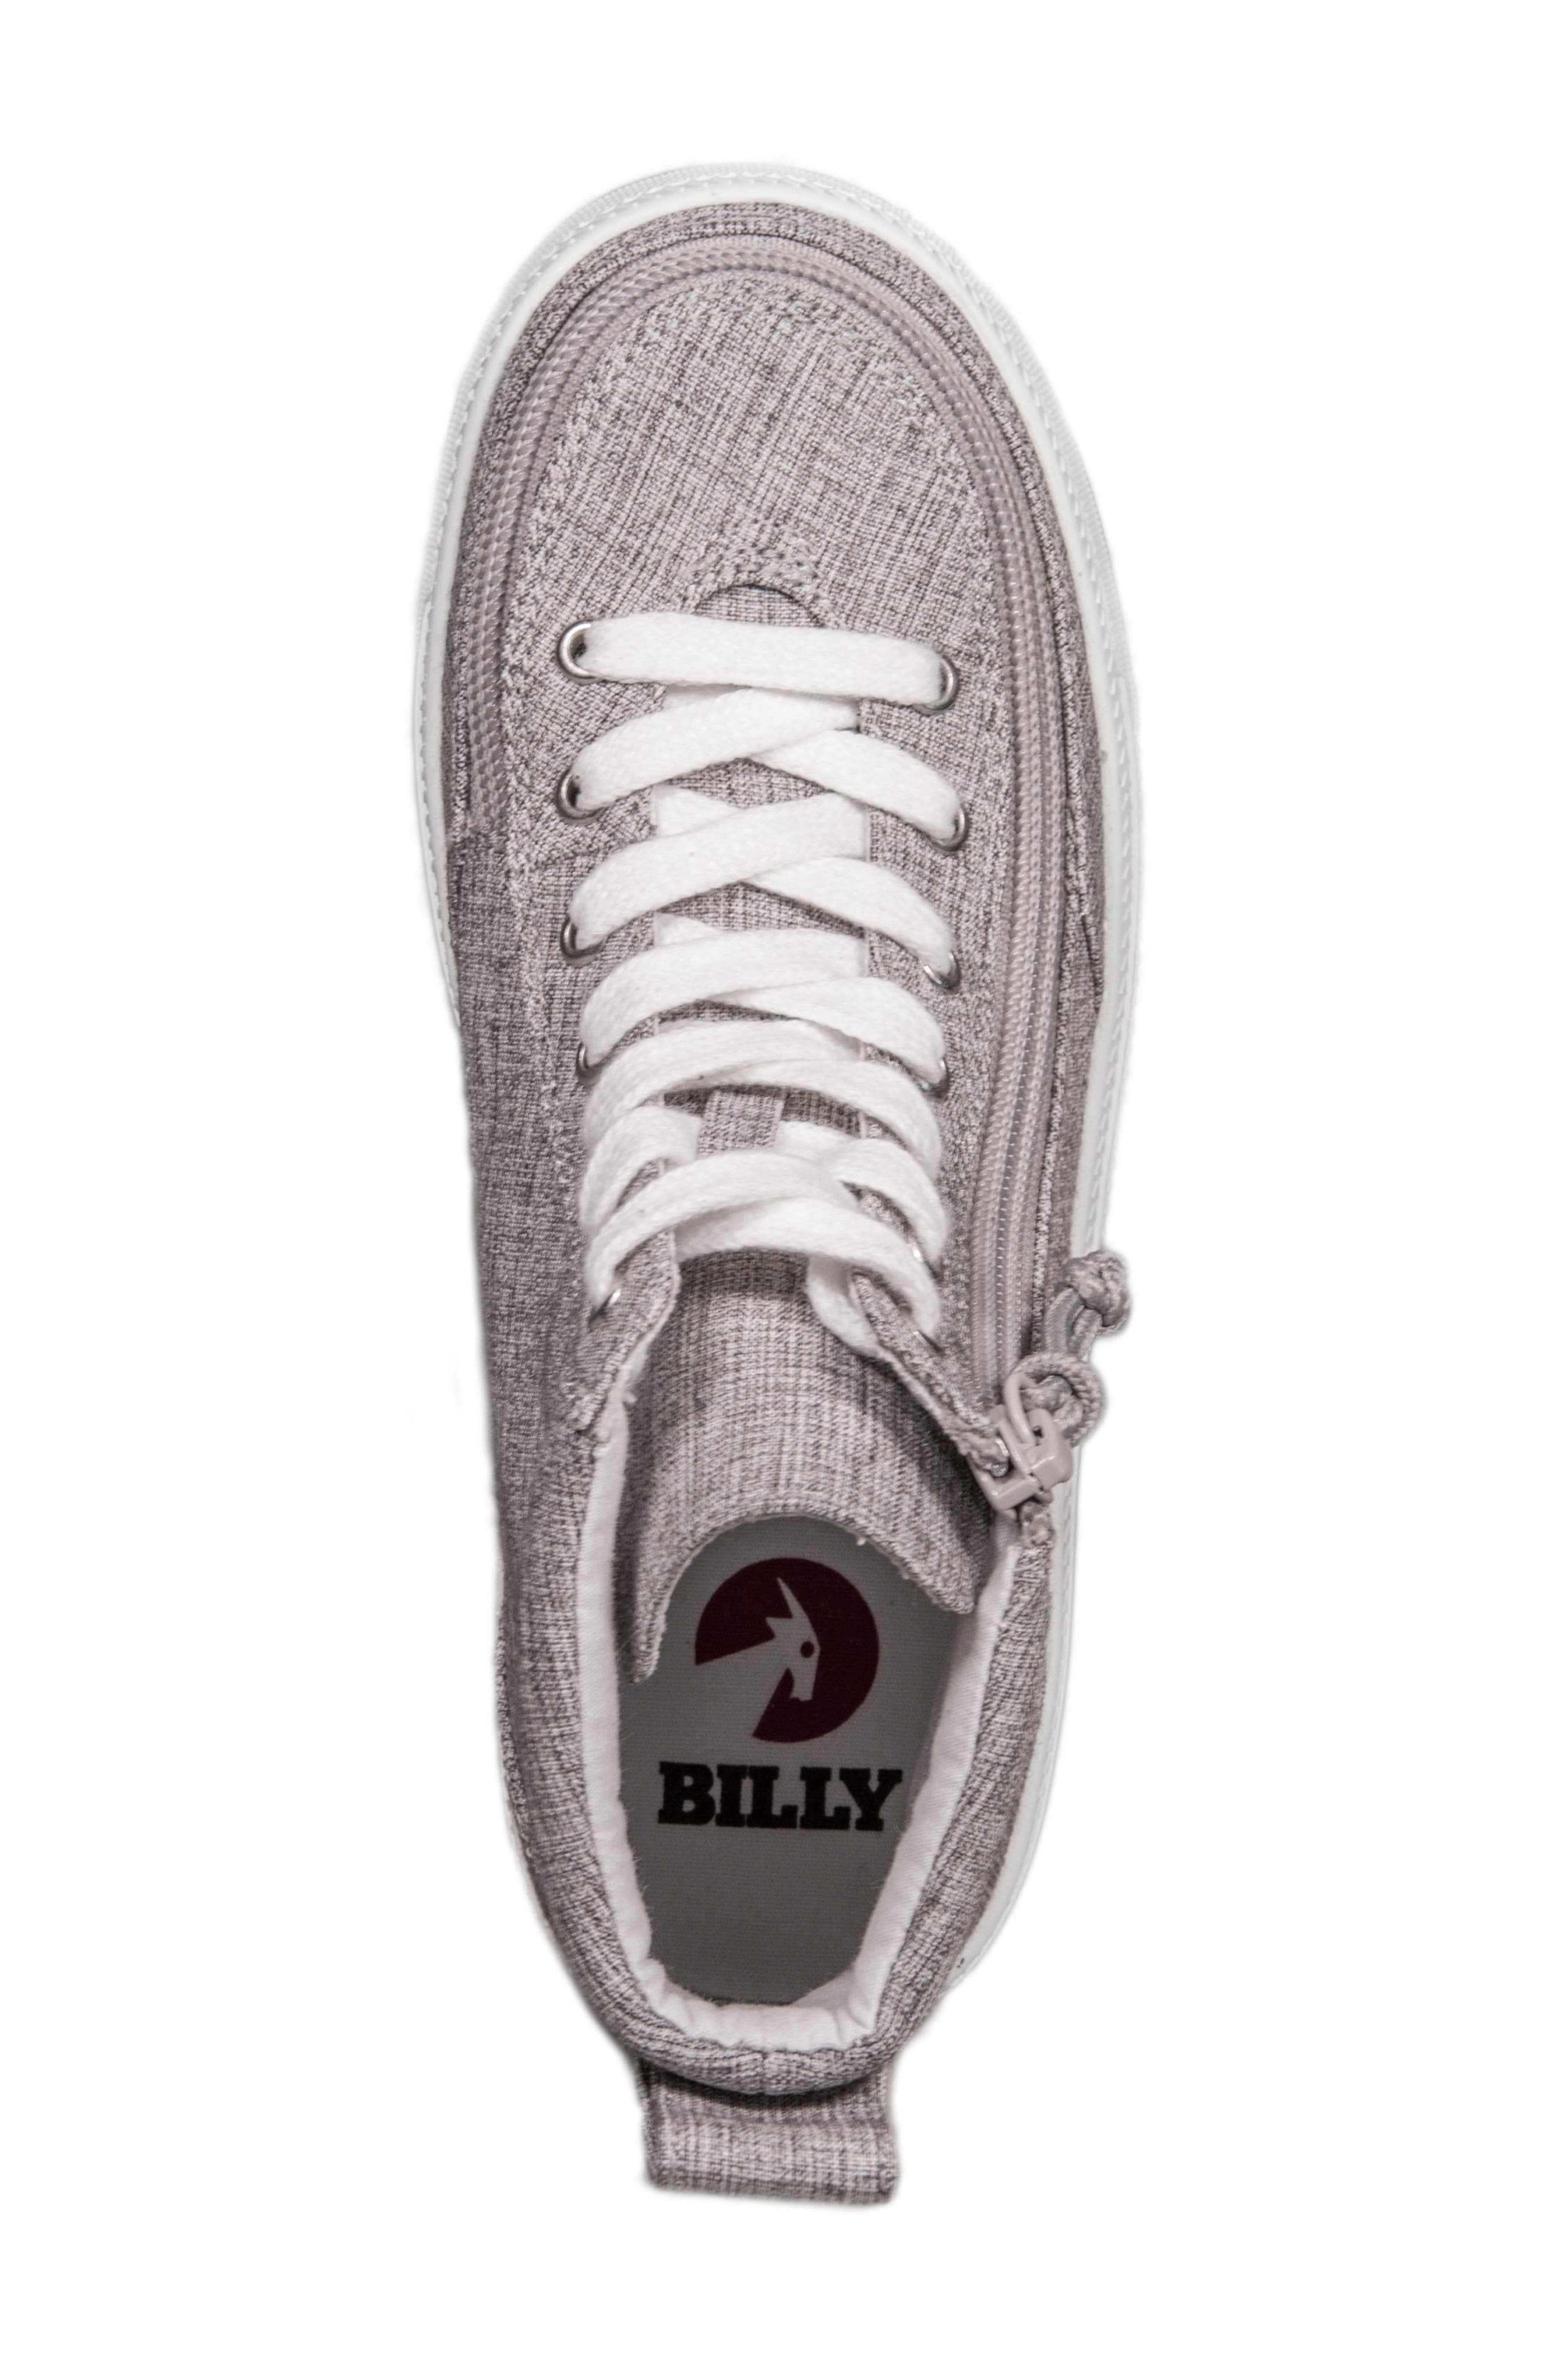 BILLY FOOTWEAR, Zip Around High Top Sneaker, Alternate thumbnail 4, color, GREY JERSEY